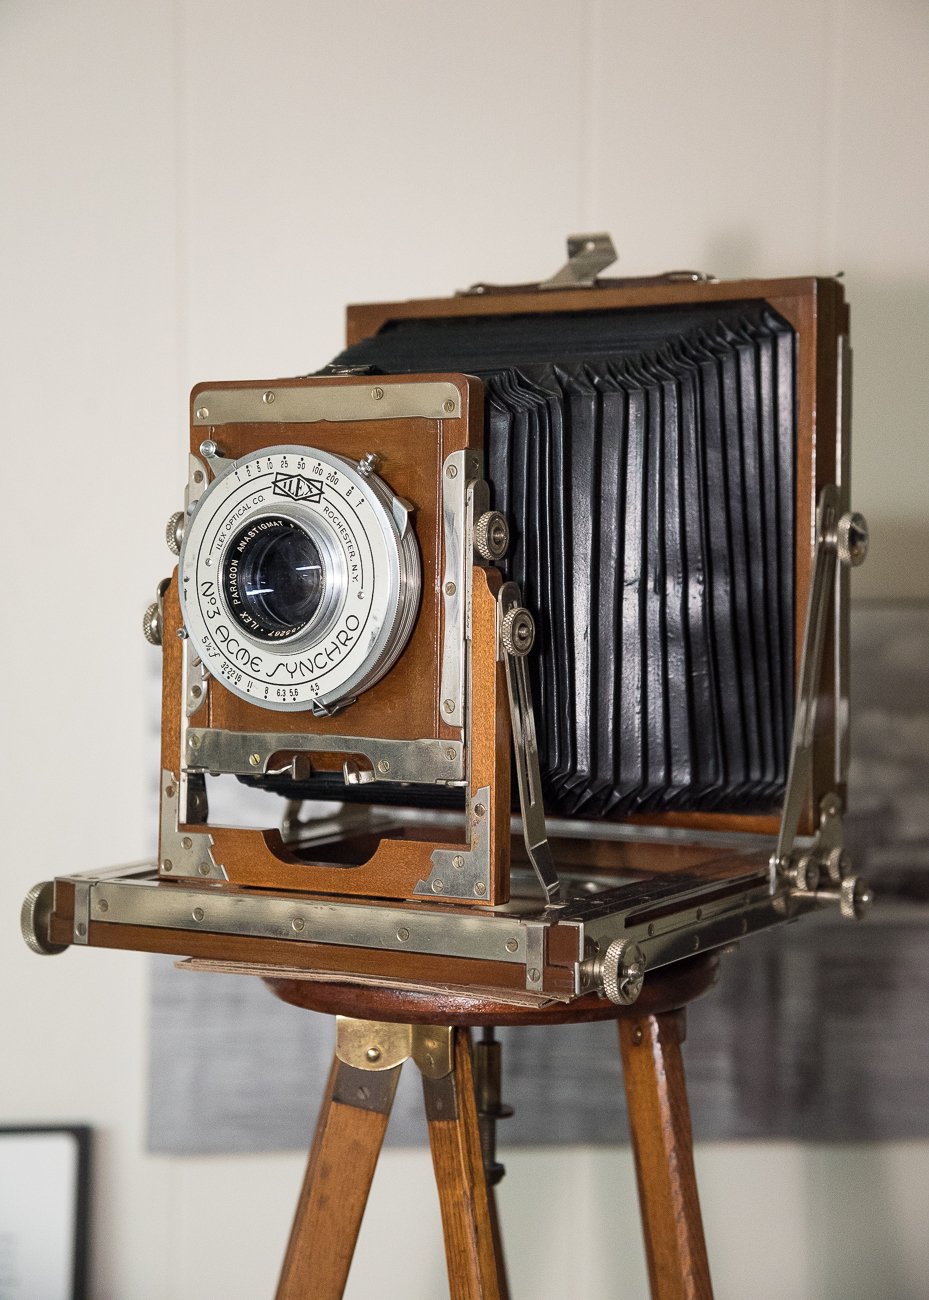 Tim received this old camera from a friend who lives in Camp Dennison. He says it came with a suitcase, and he mounted it on top of a 1910 tripod. / Image: Phil Armstrong, Cincinnati Refined // Published: 2.25.19